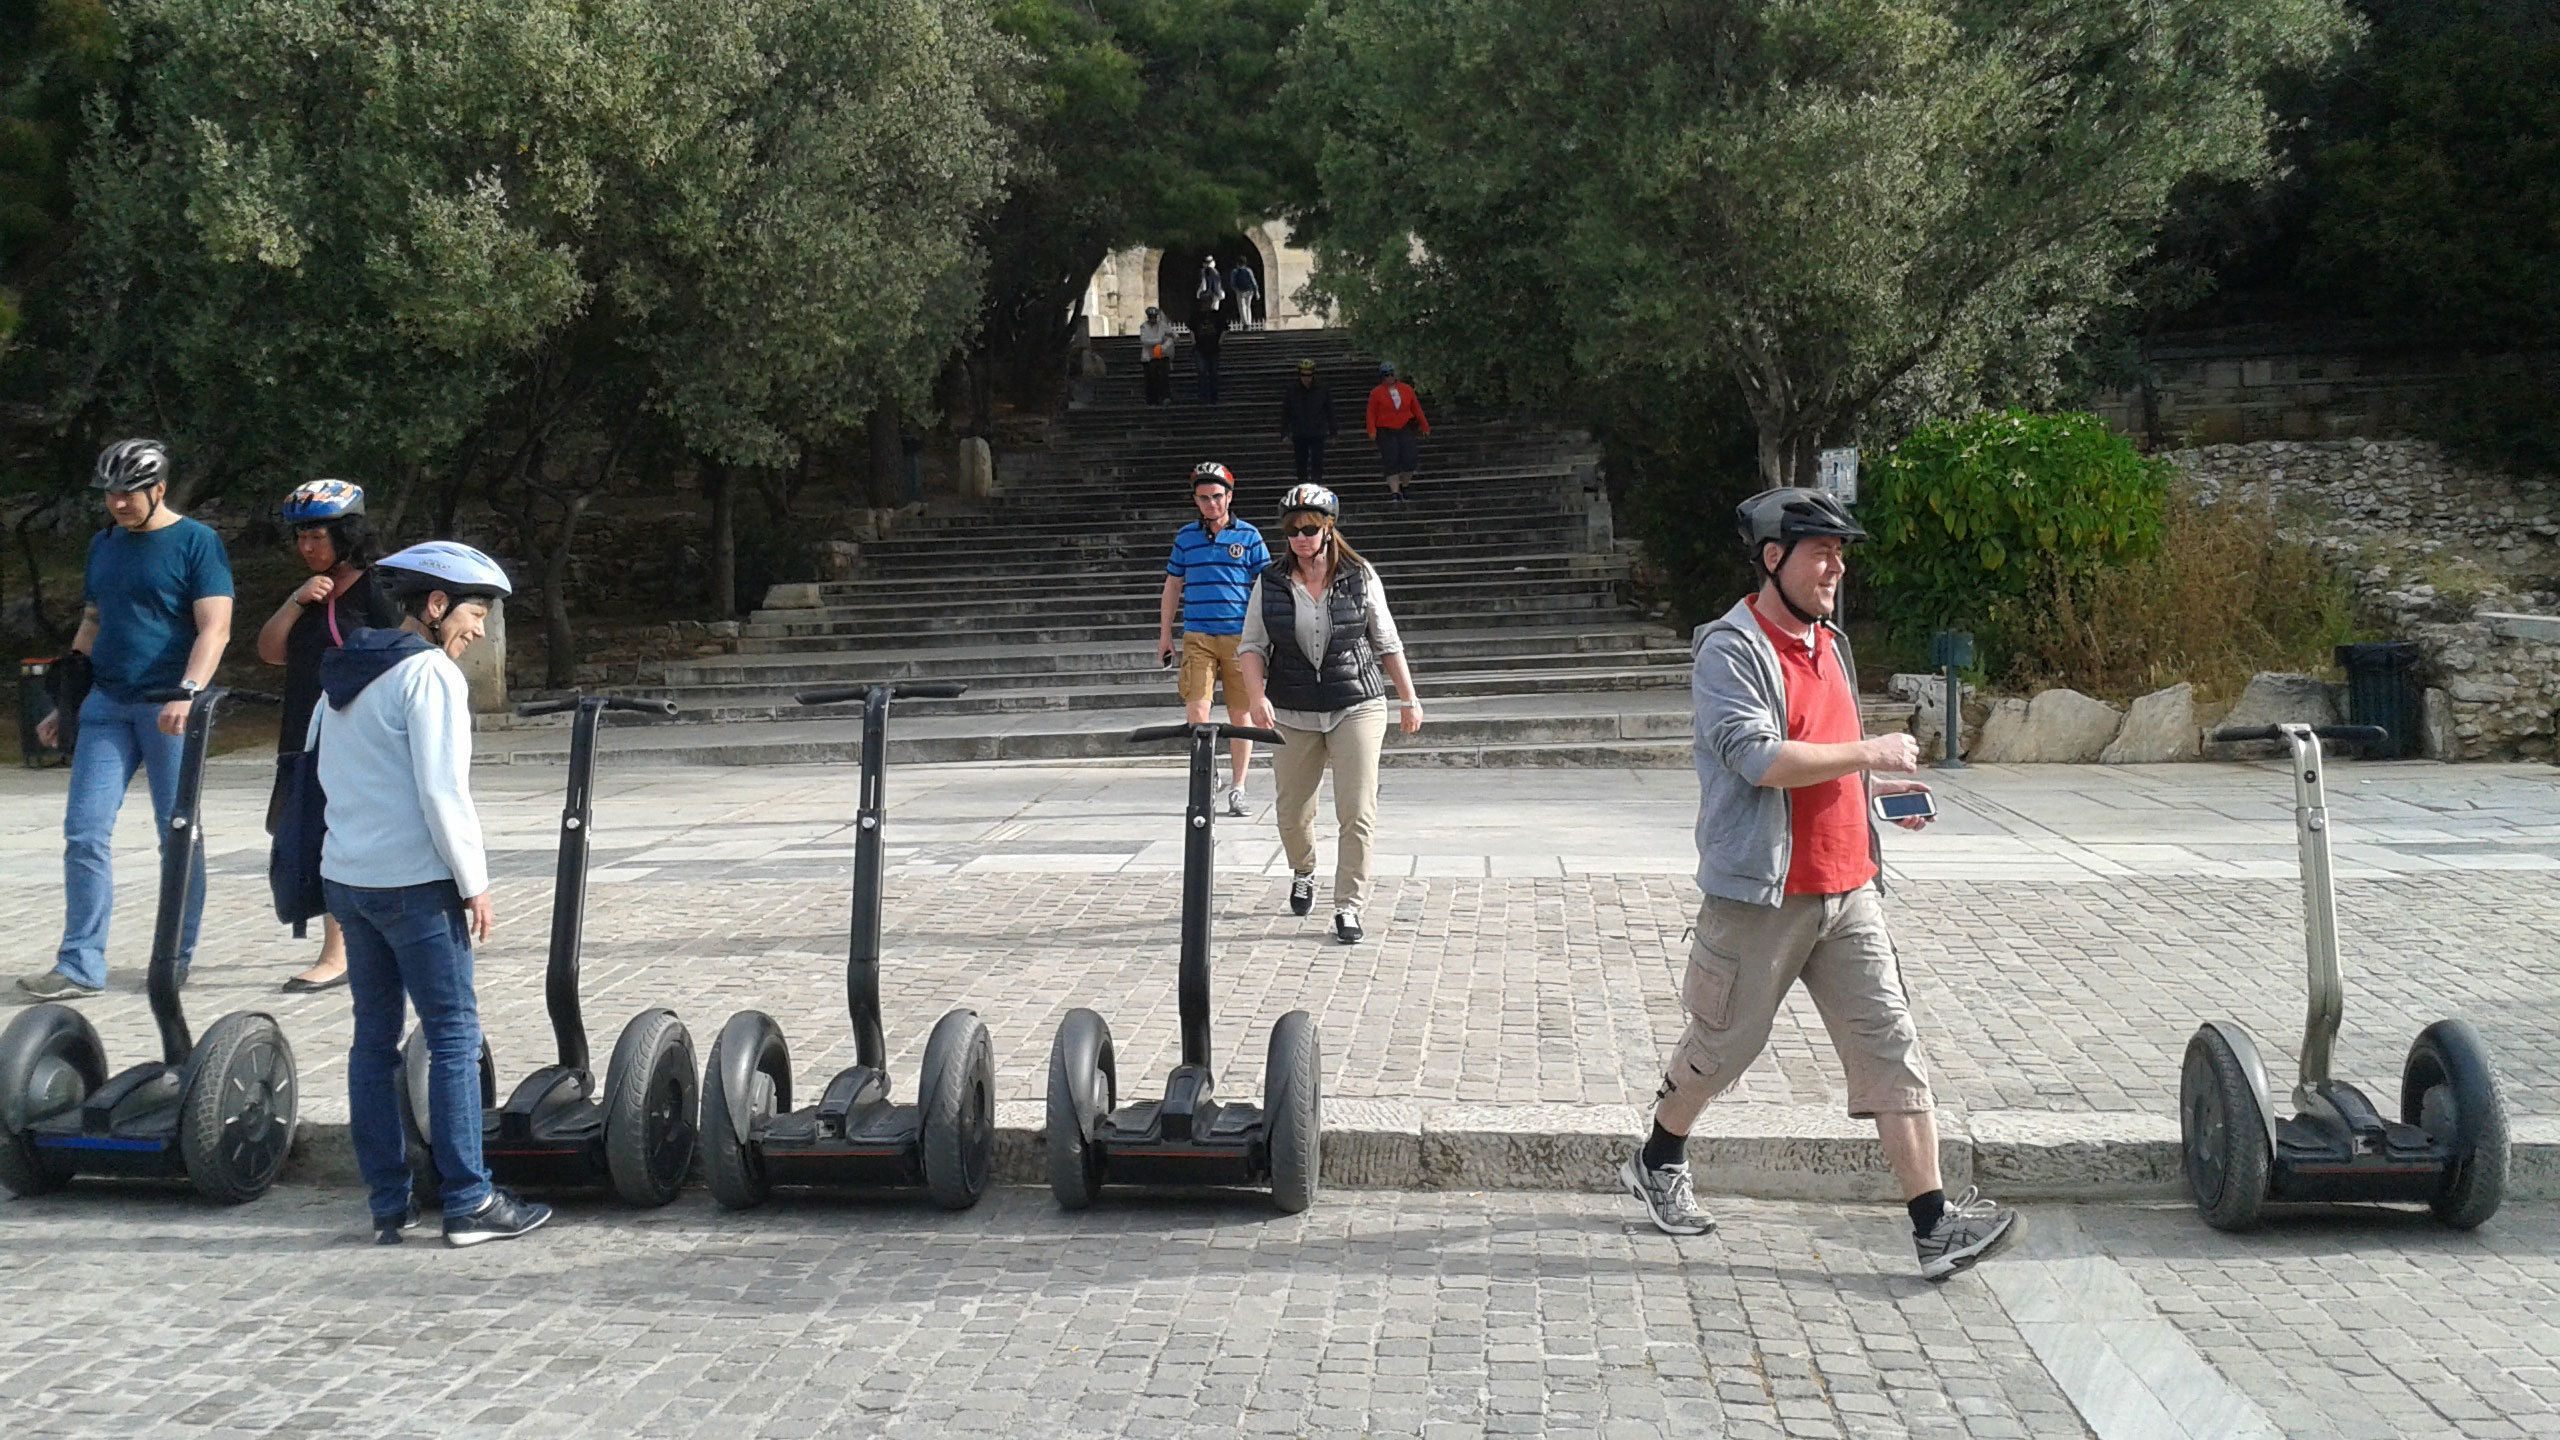 people in safety helmets about to ride their segways around Dionysou Aeropagitou in Athens